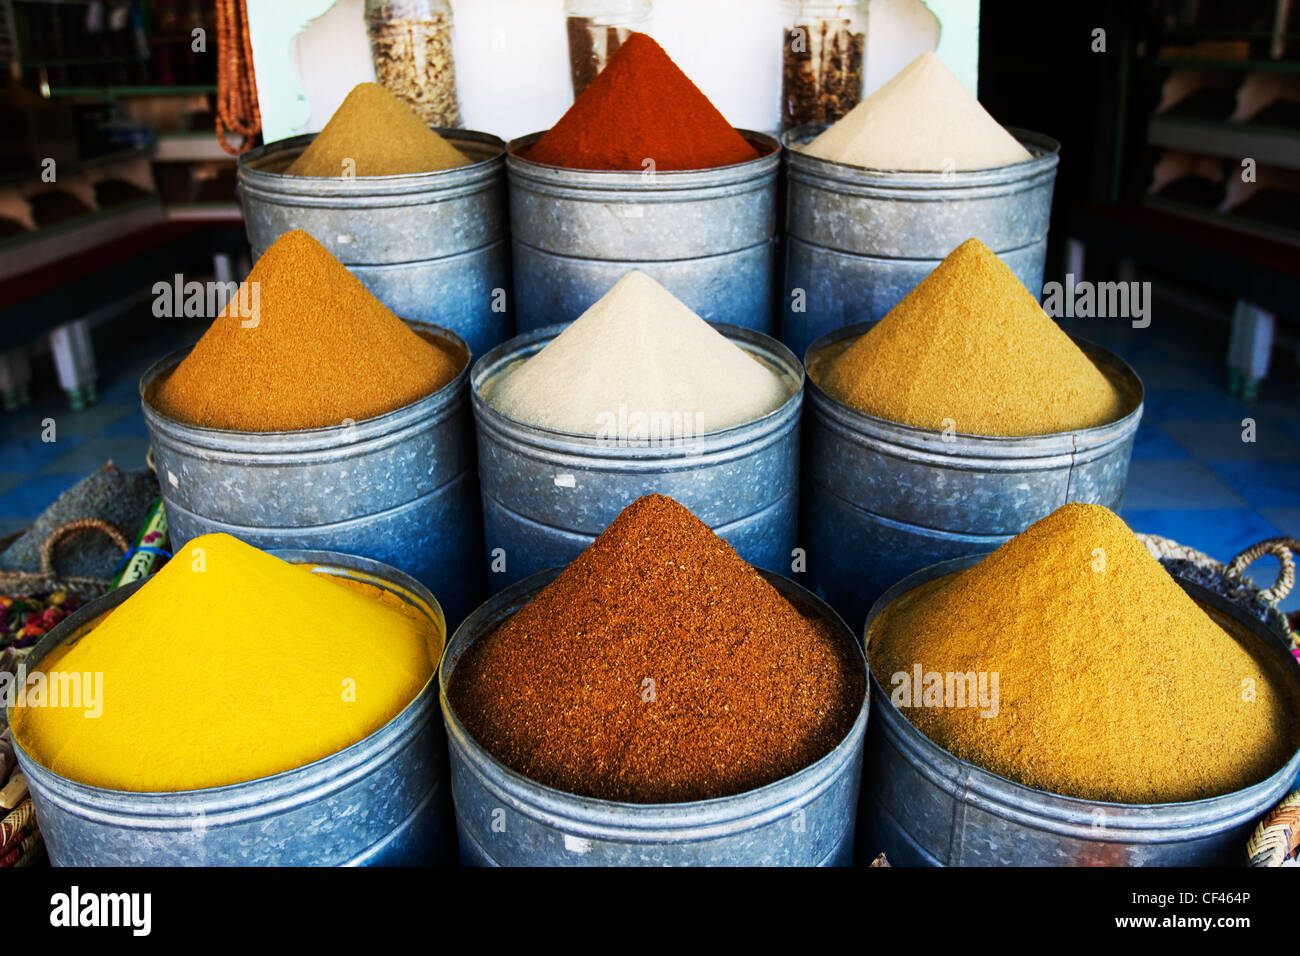 moroccan spice stock photos & moroccan spice stock images - alamy